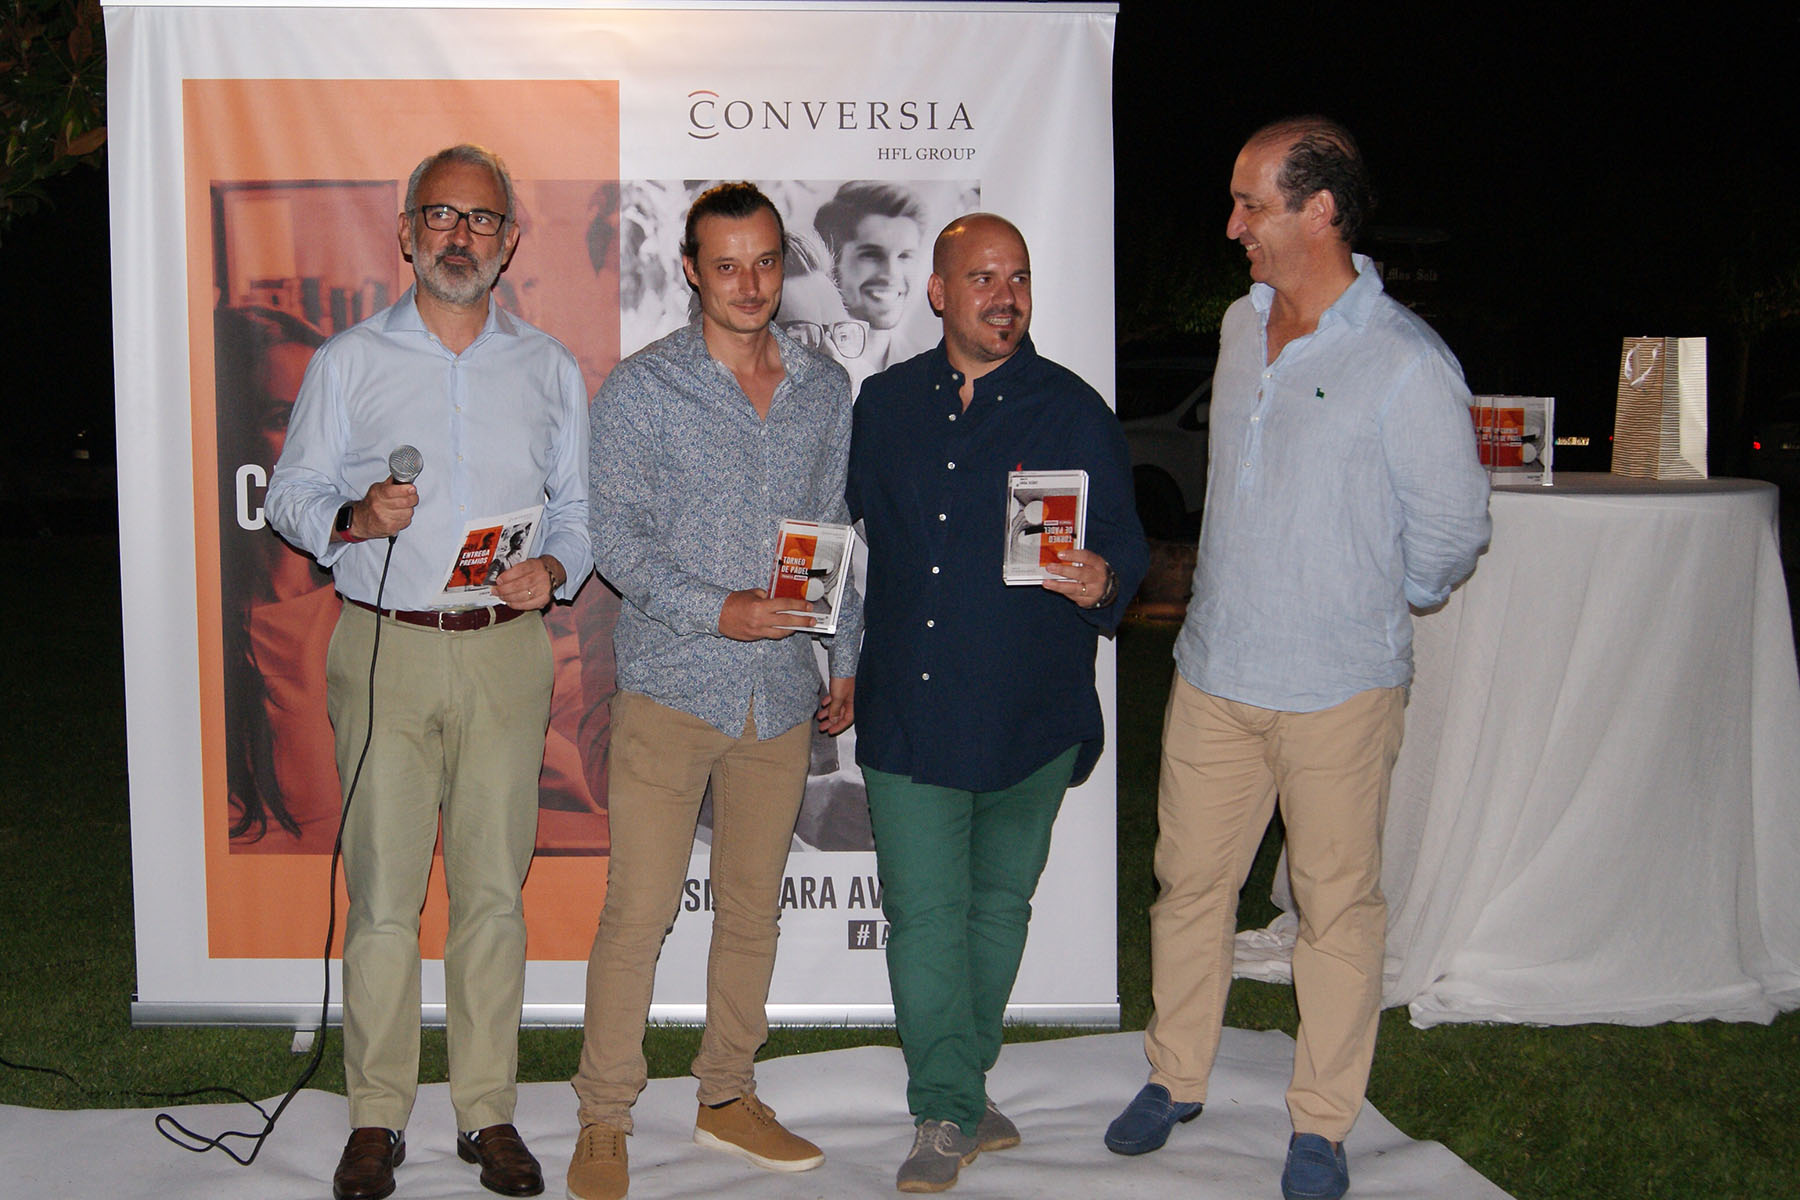 Conversia Check Point Julio 2019 Padel Ganadores Promesas